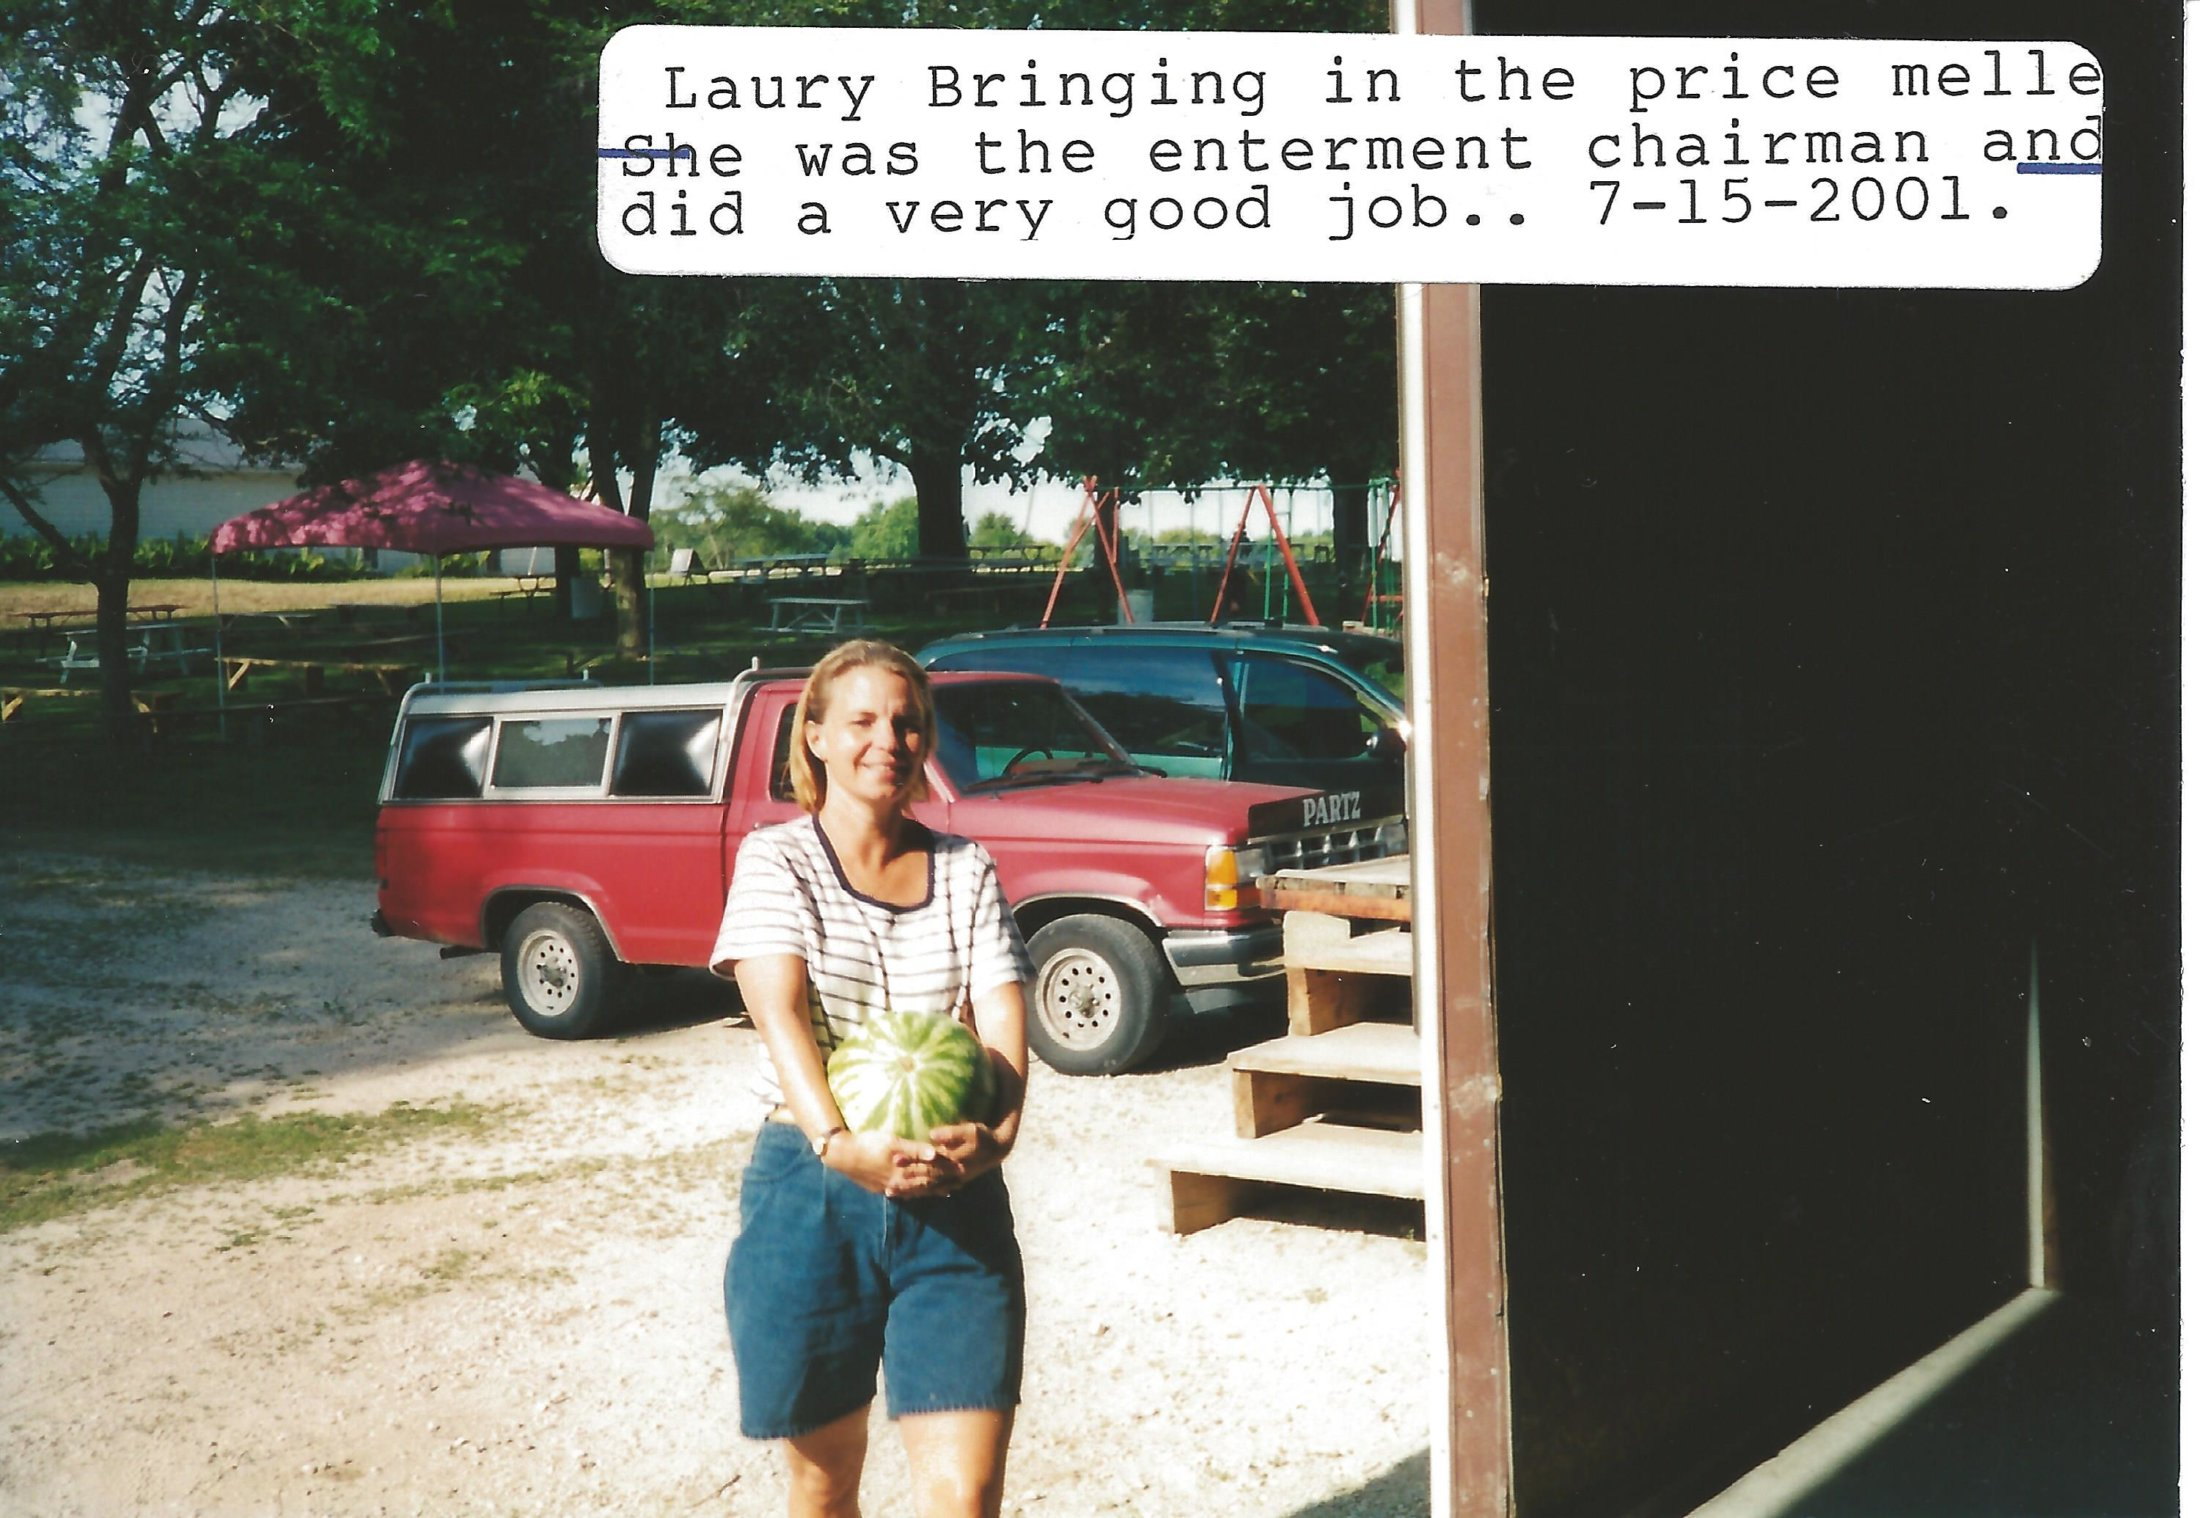 Laury - Entertainment Committee - Bringing In the Watermelon